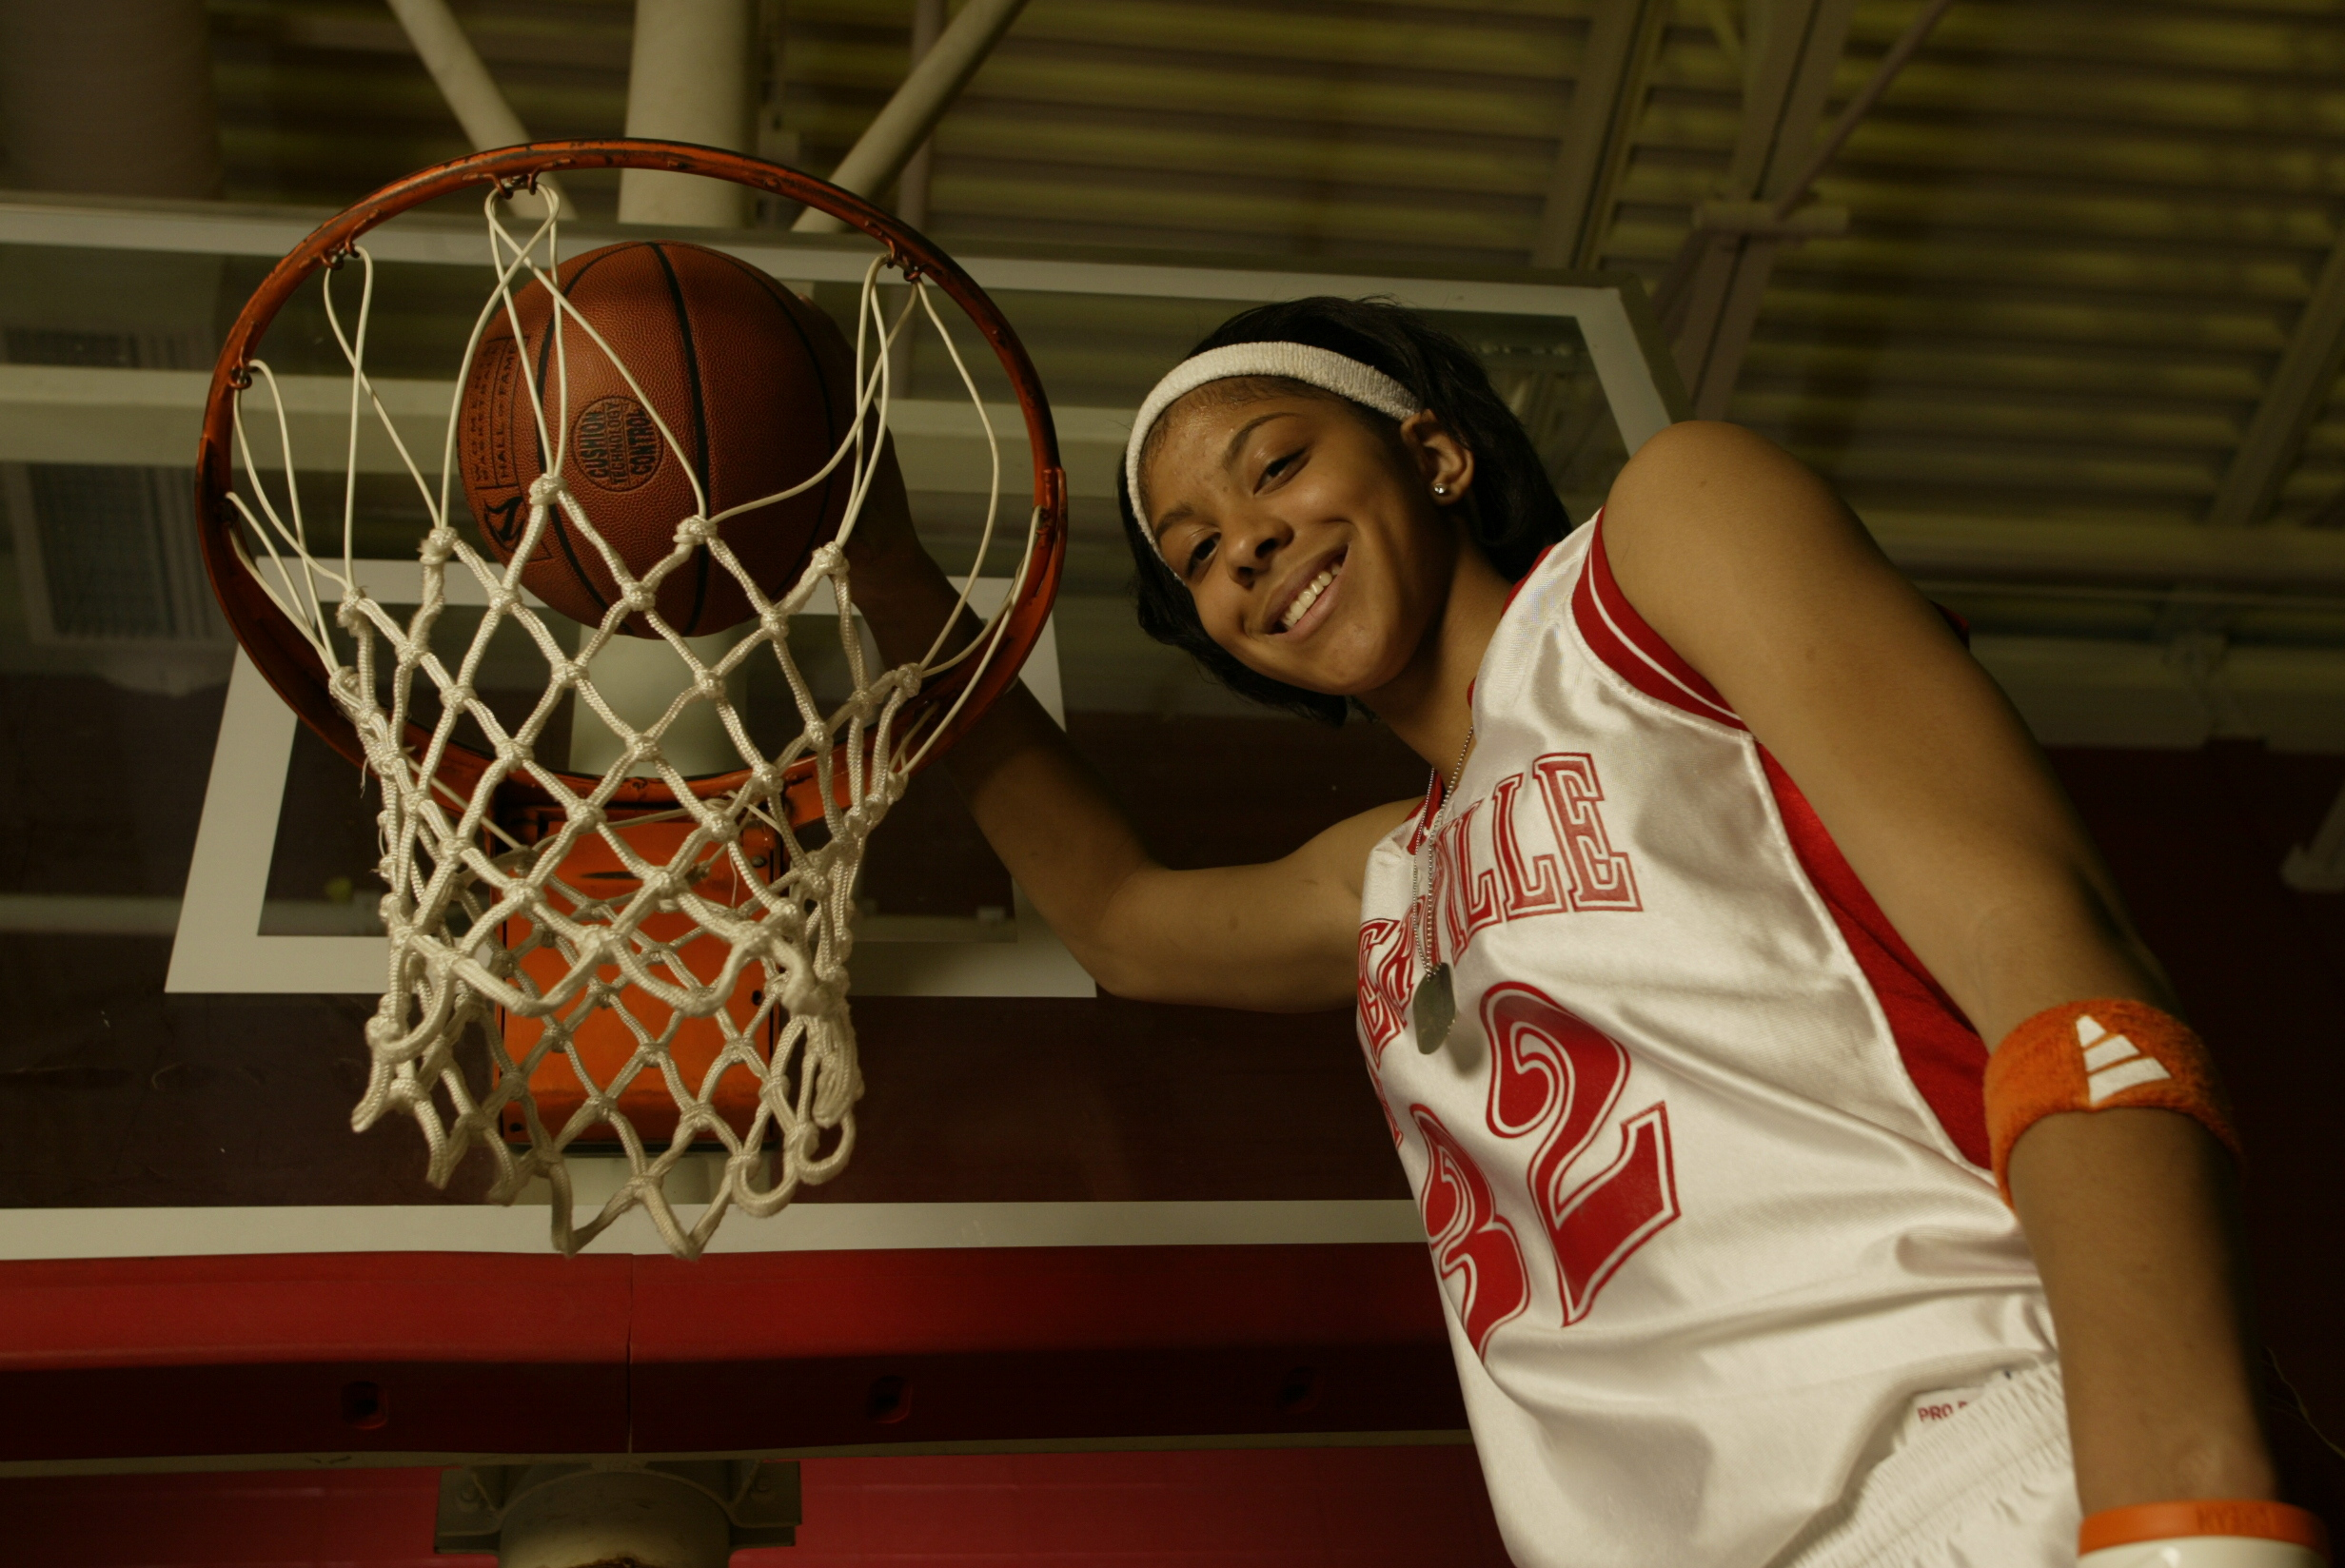 All USA player of the year Candace Parker, Naperville, IL